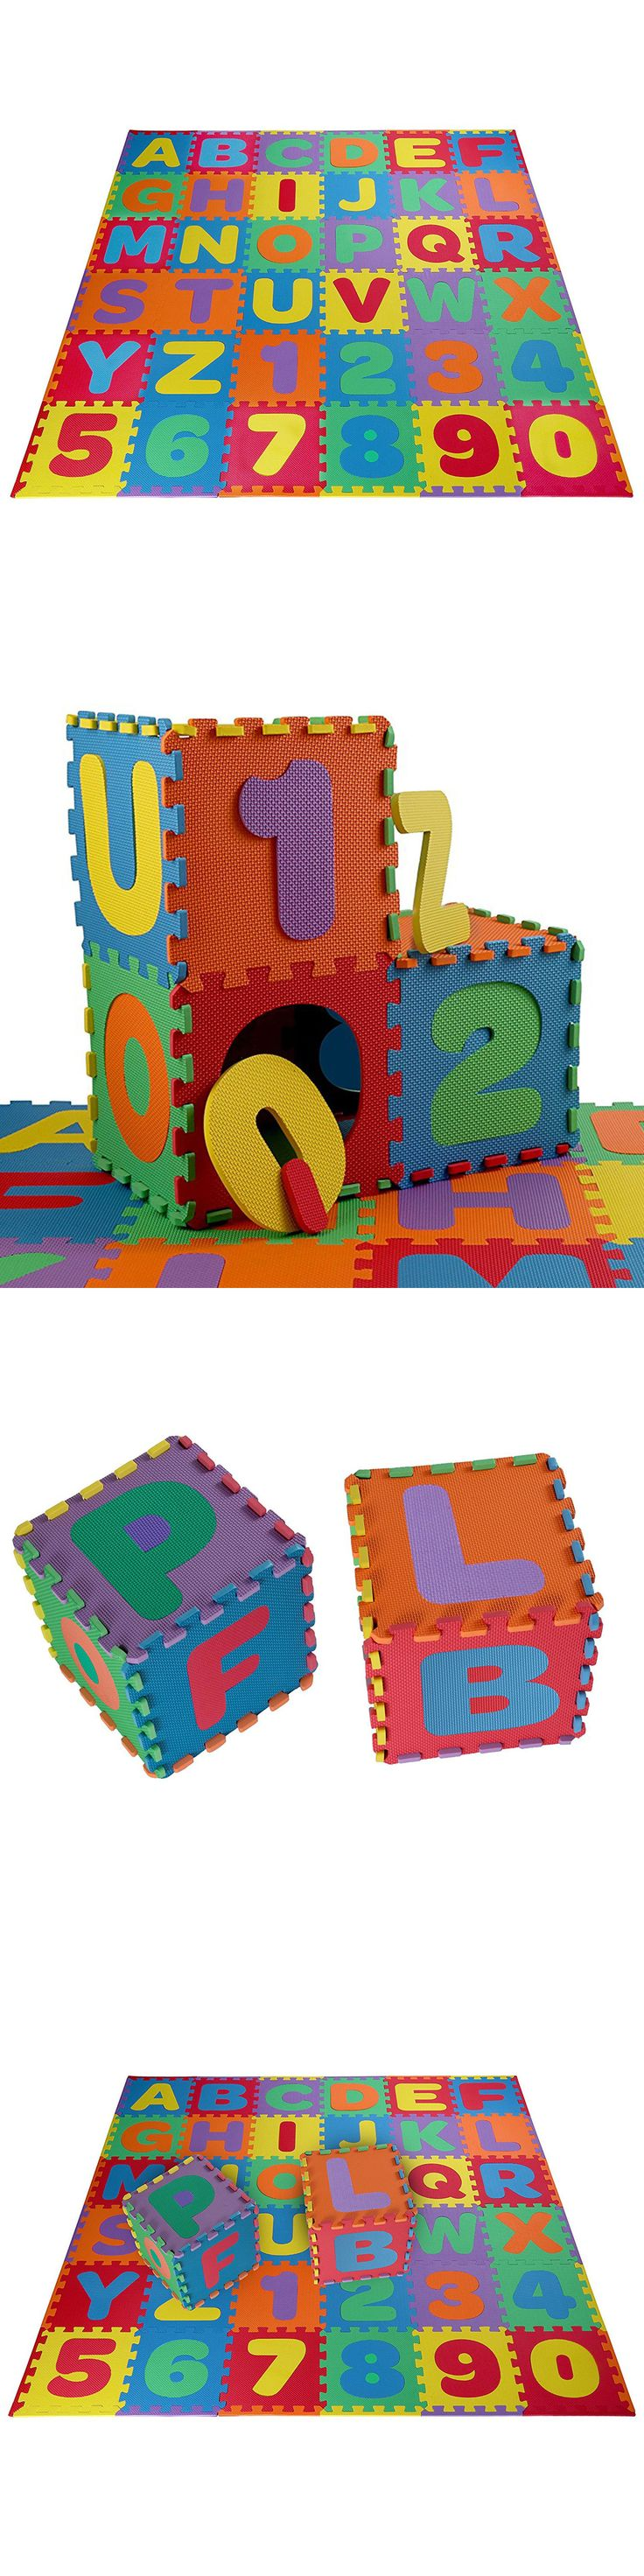 Baby Gyms and Play Mats 19069: Kids Foam Floor Puzzle Play Mat Gym Toy 36 Pcs Abc Numbers Baby Toddler Playmat -> BUY IT NOW ONLY: $39.89 on eBay!